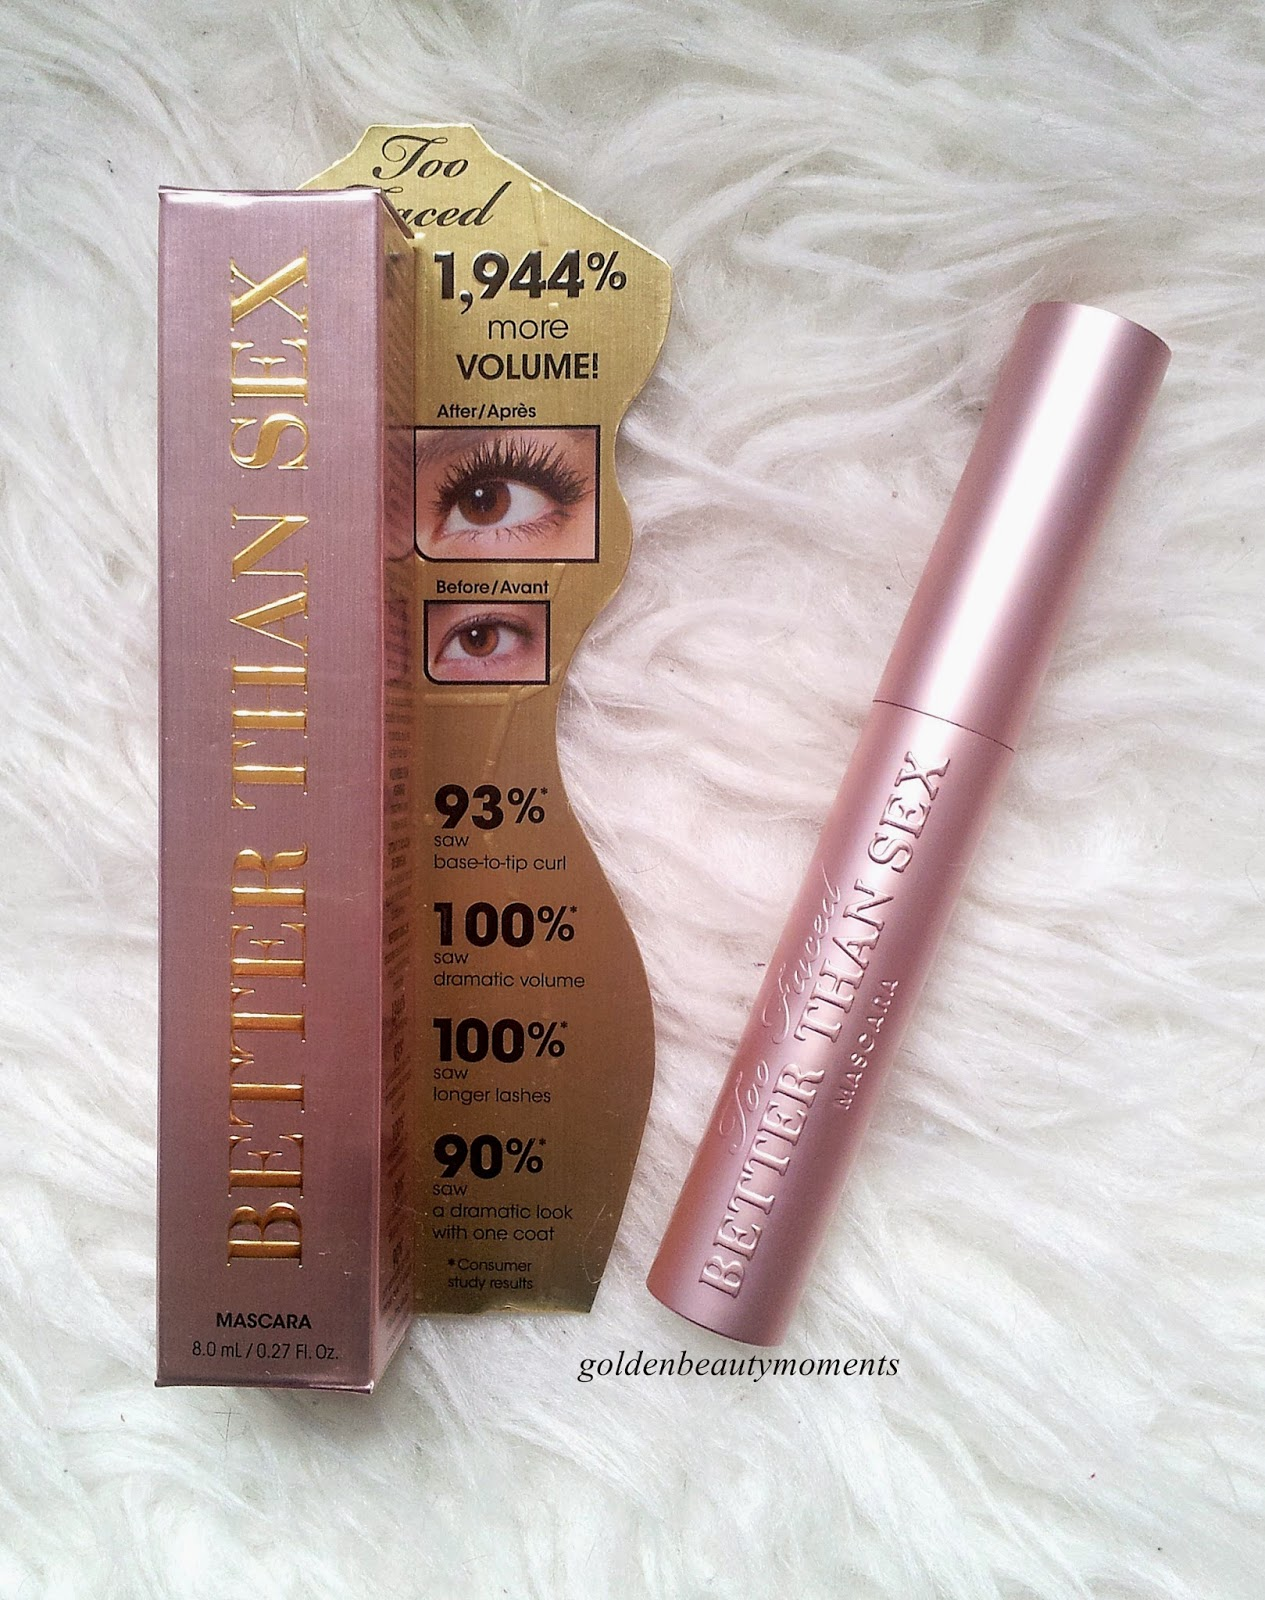 [Review] Too Faced: Better Than Sex Mascara